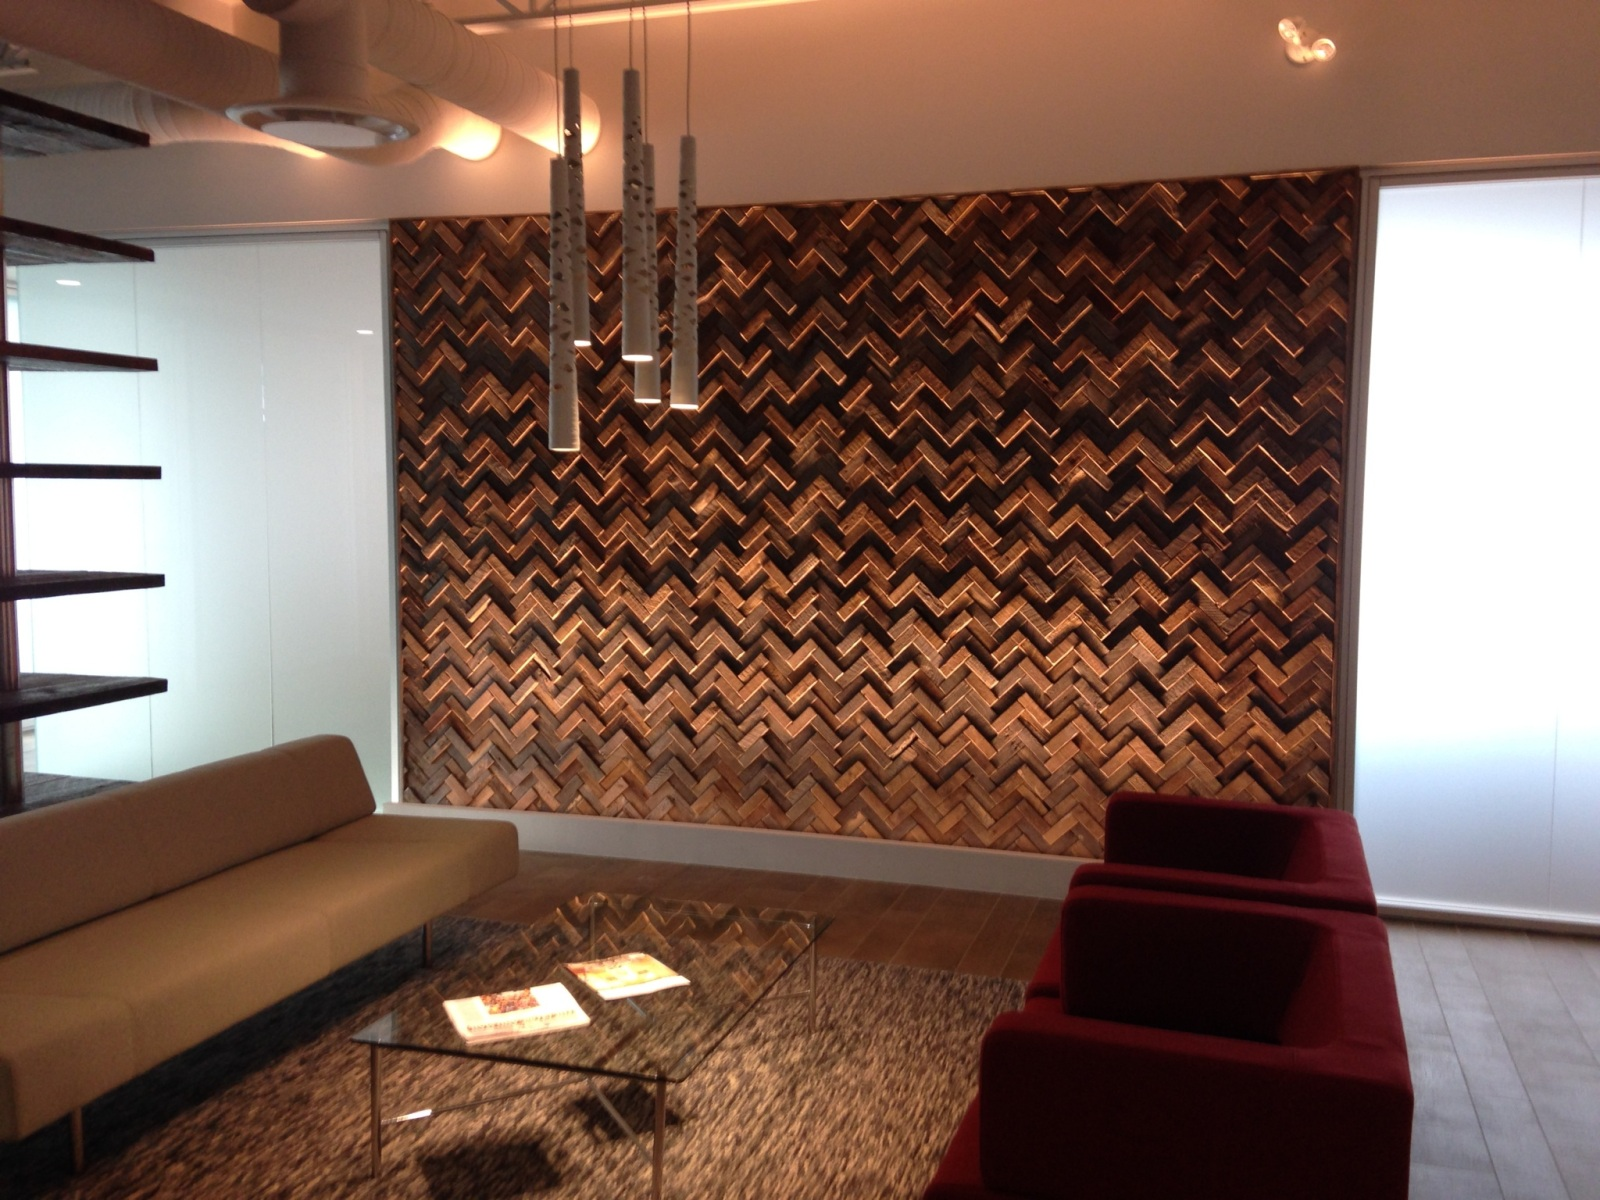 Cool Wall Covering Ideas : Unique wood wall covering ideas homesfeed